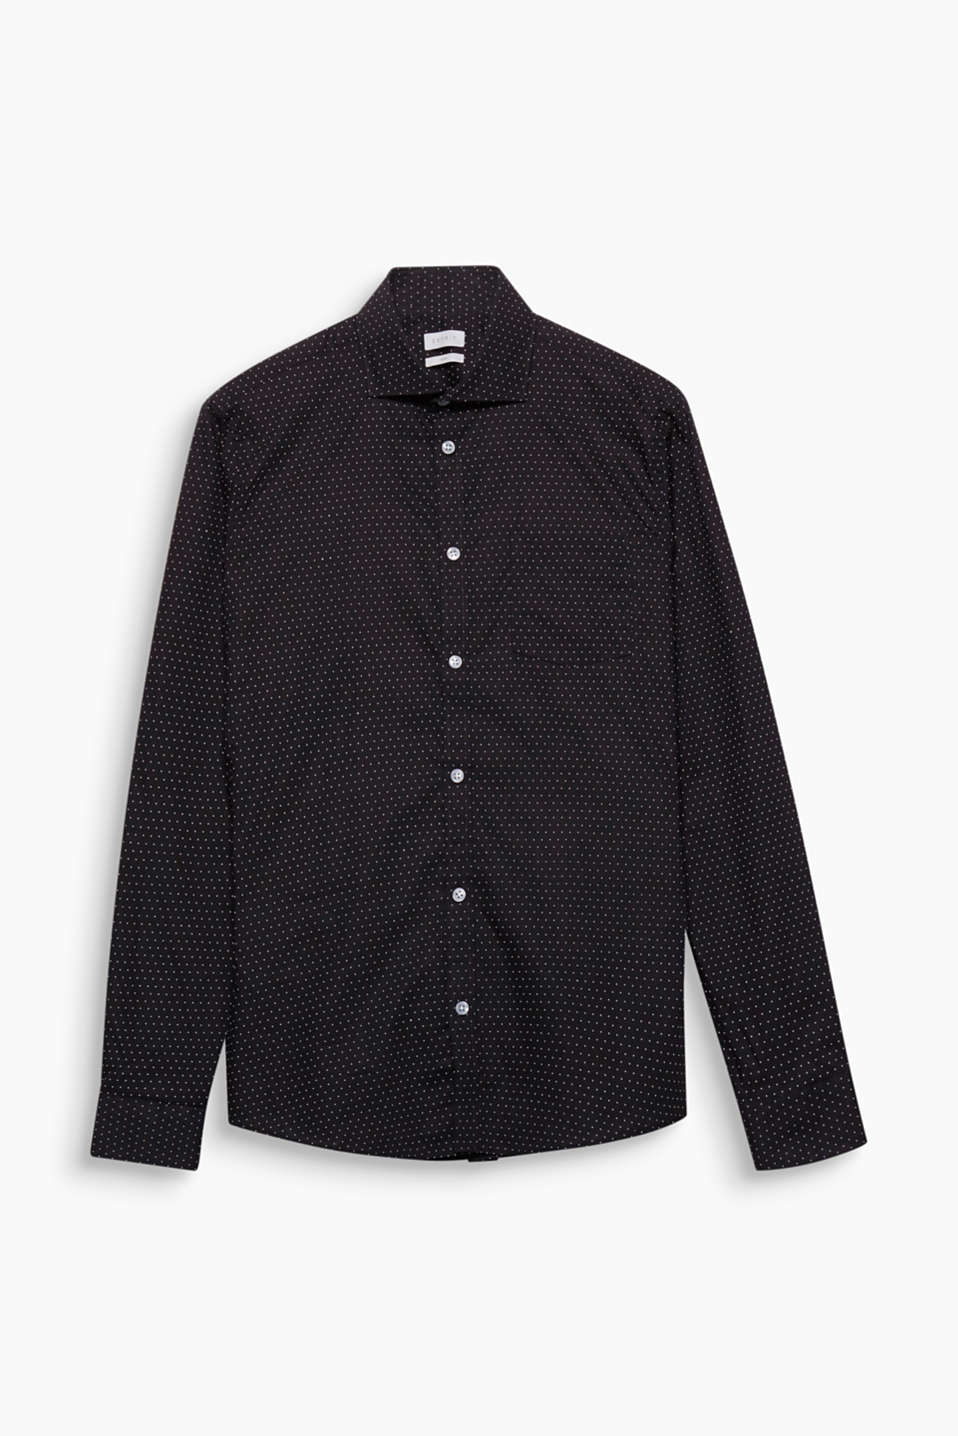 The fine polka dots and striking shark collar make this shirt a smart/casual fave.